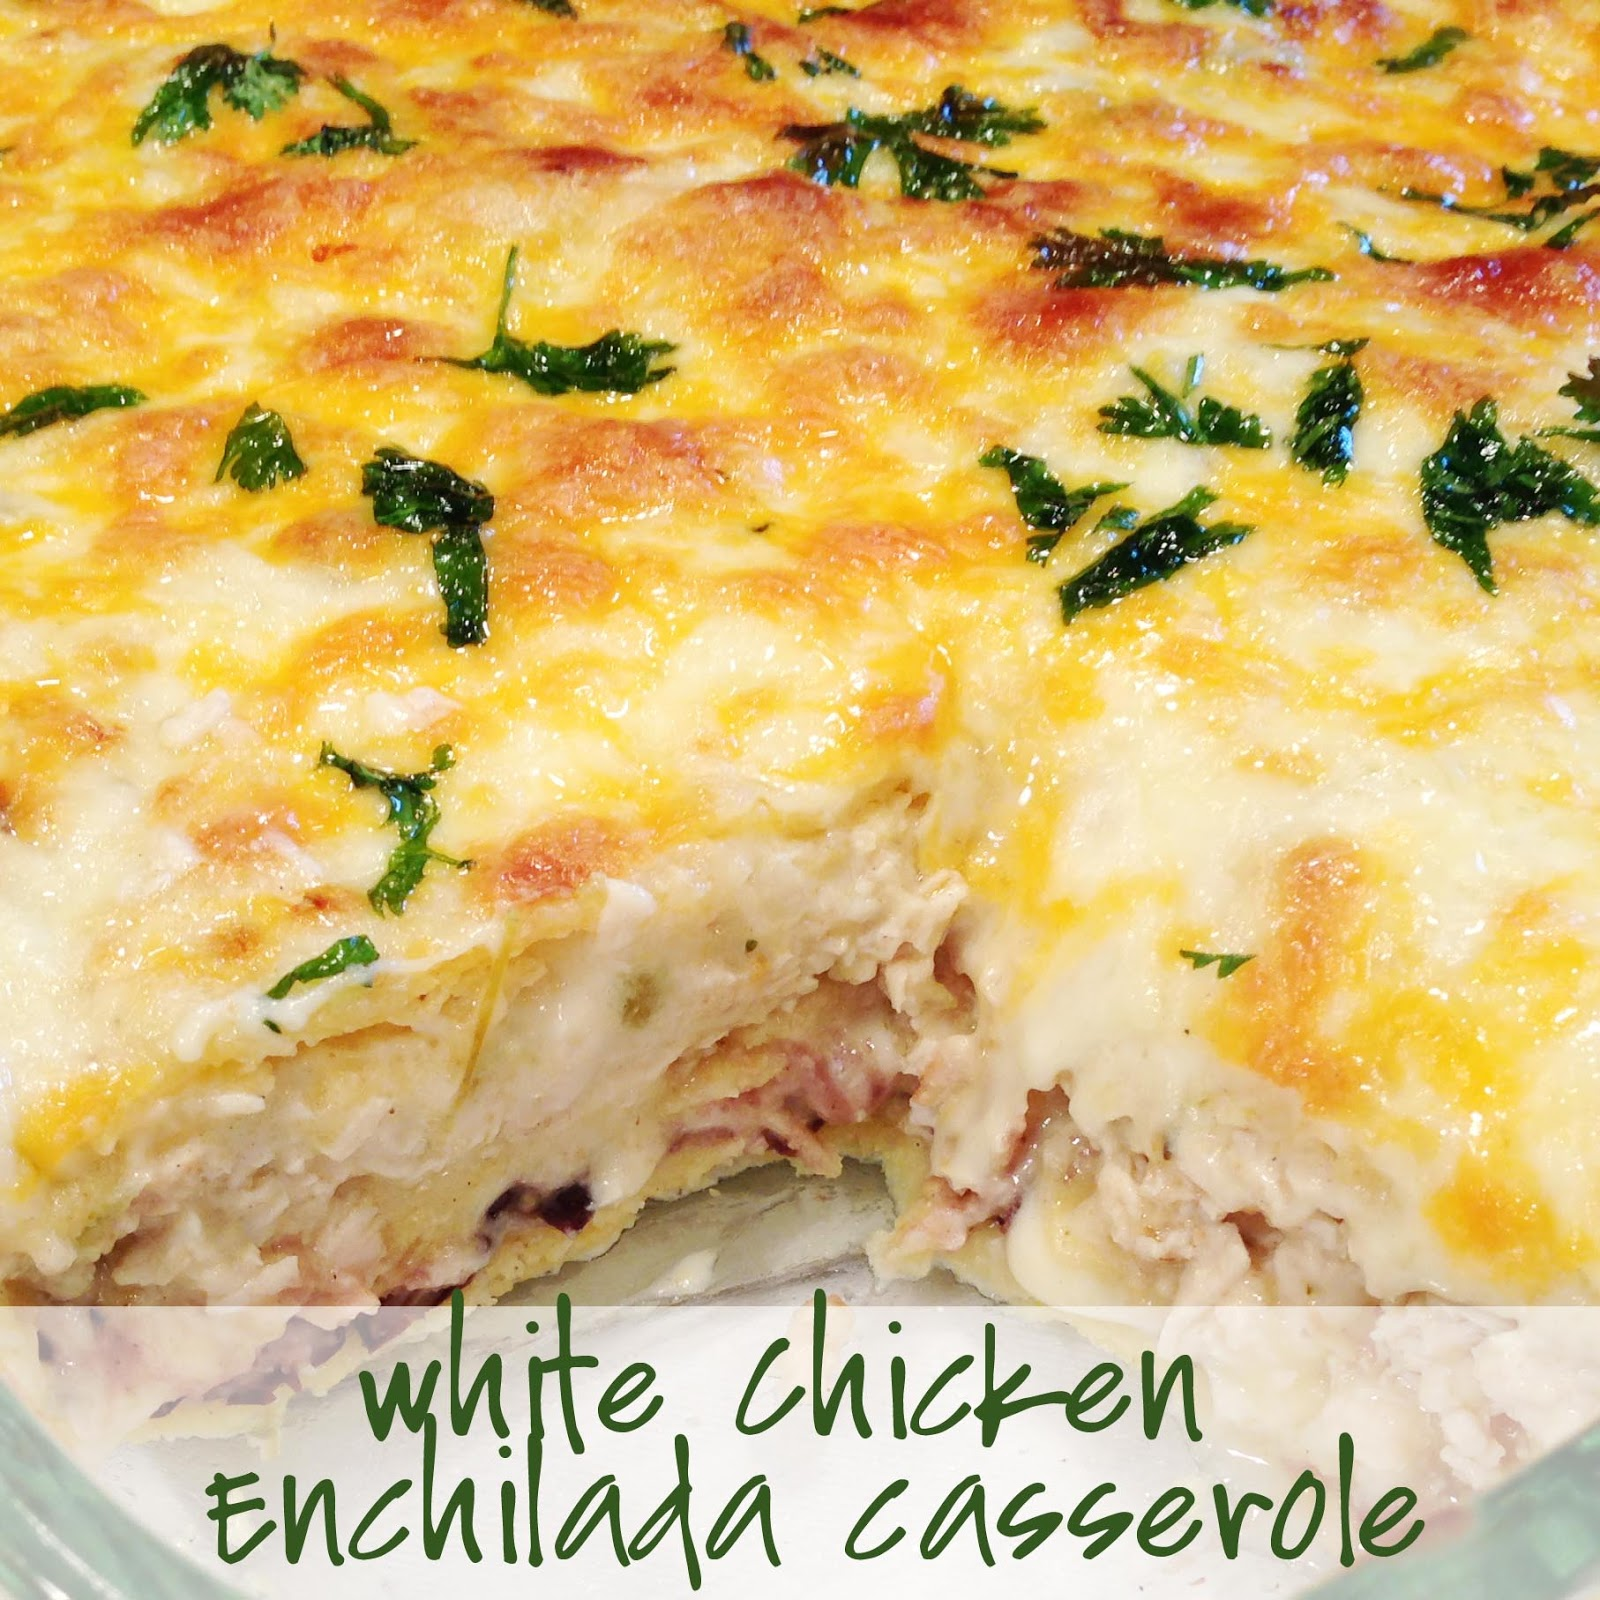 PaperDaisyKitchen: White Chicken Enchilada Casserole